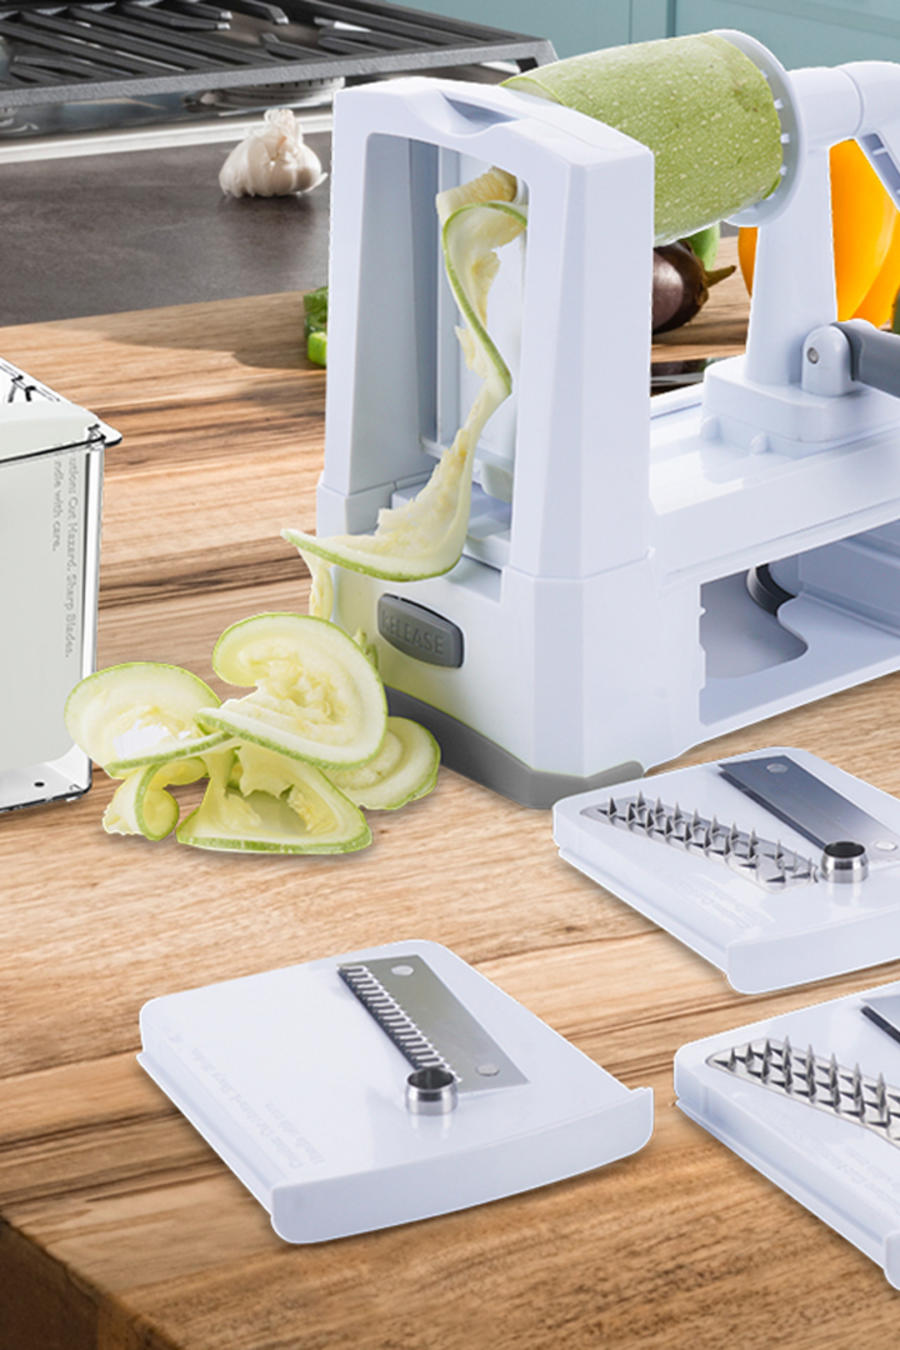 Top Kitchen Items That Everyone Loves On Amazon